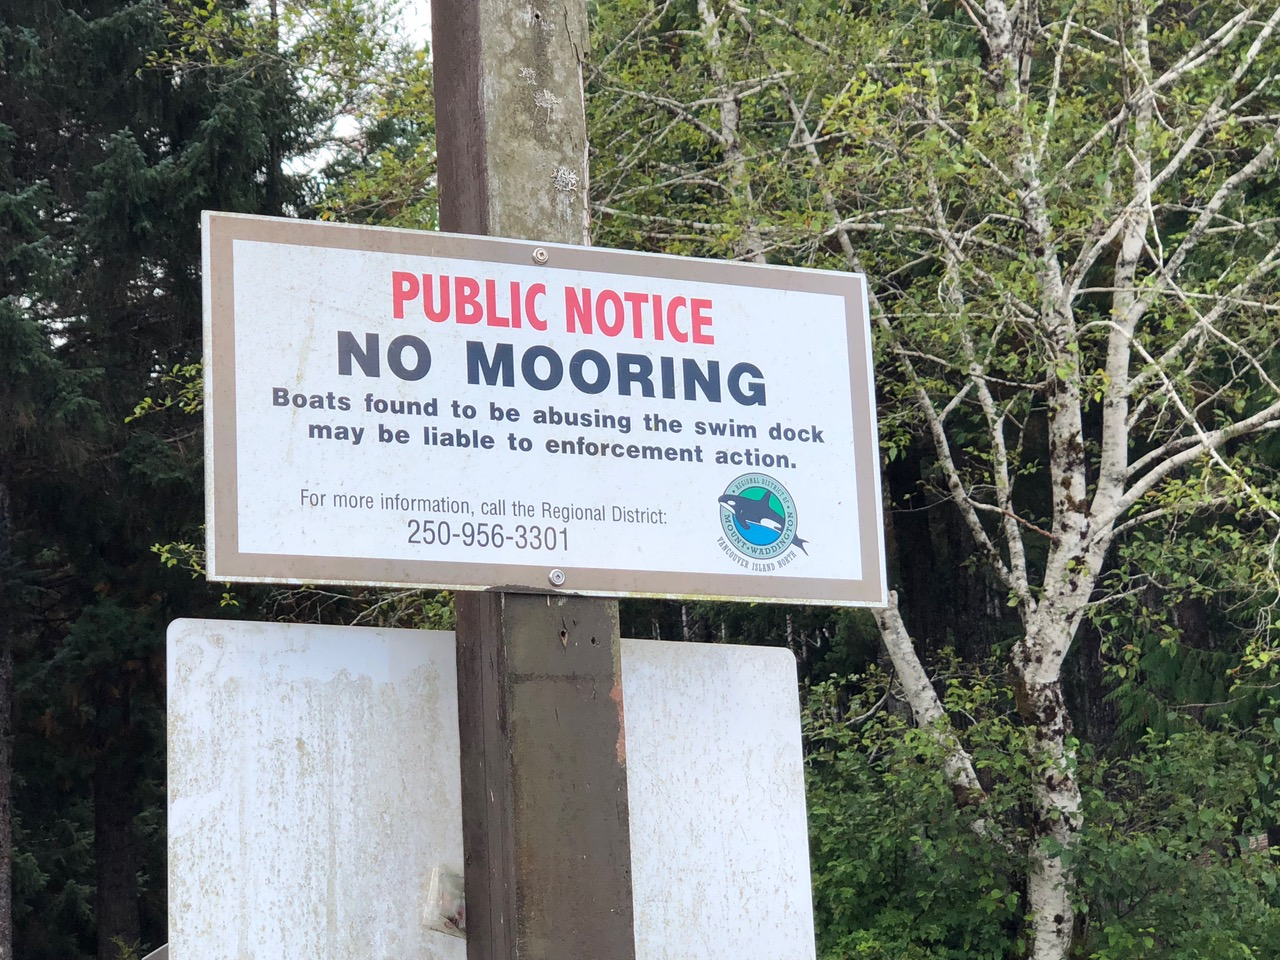 Had to read what mooring means...